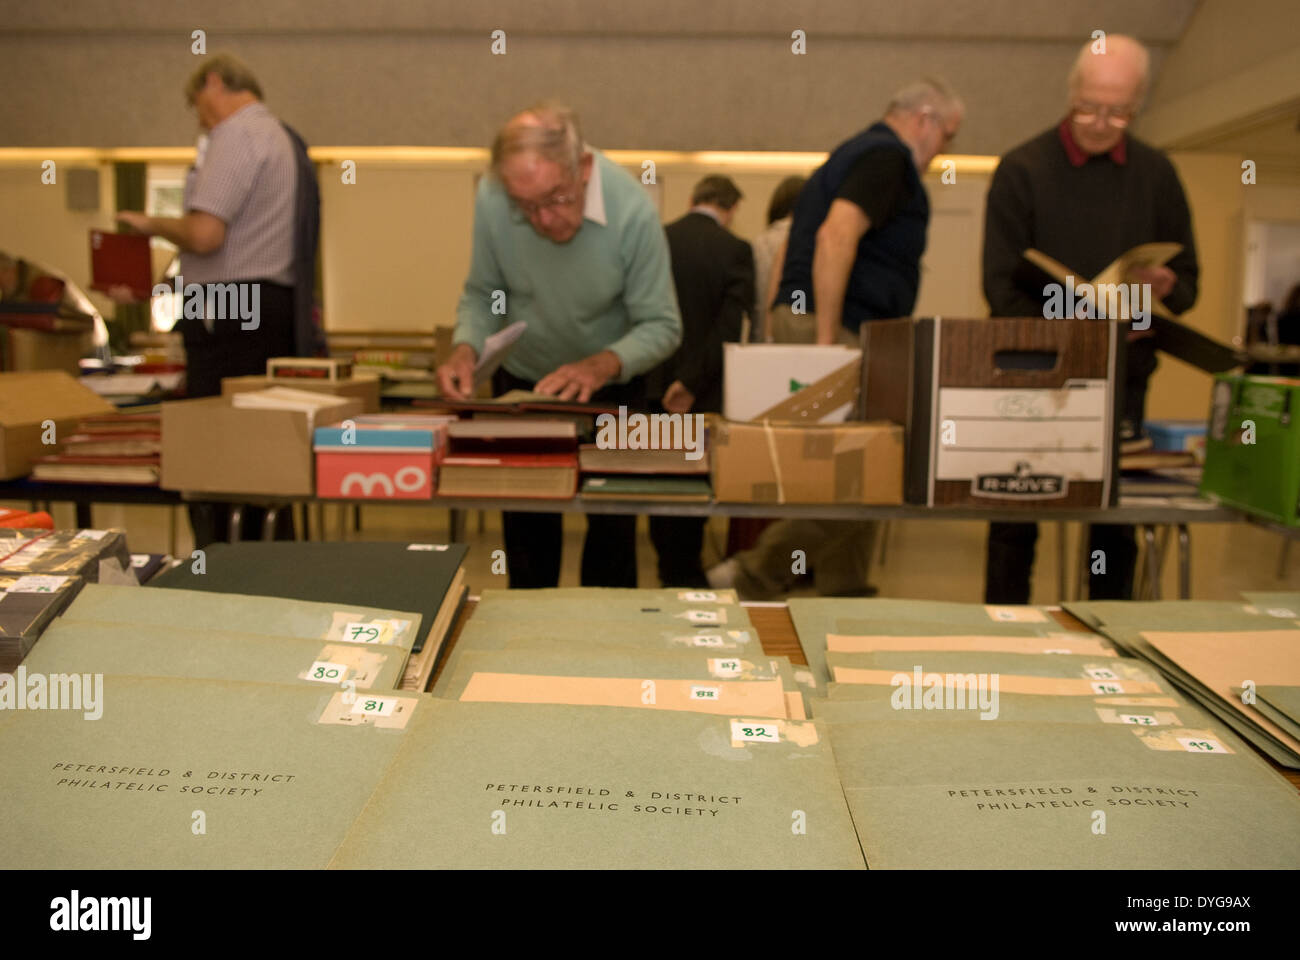 Stamp auction room, Petersfield, Hampshire, UK. - Stock Image